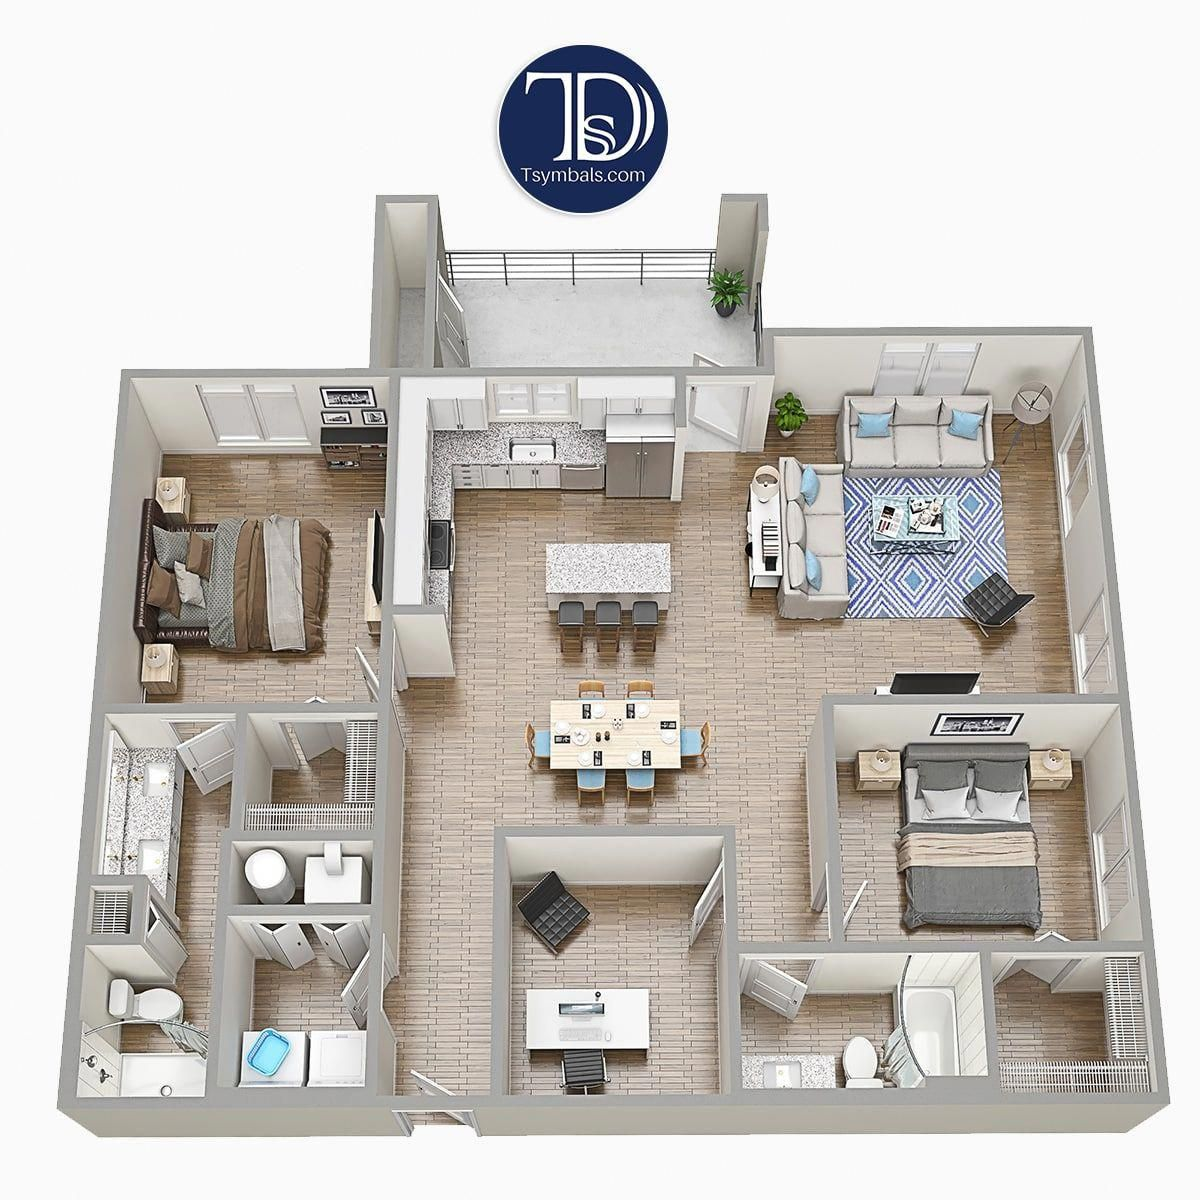 Two Bedrooms Apartment Floorplan With Furniture Fully Furnished 3d Floorplan With 2 Beds Kitchen 2 Home Design Plans Floor Plans Apartment Floor Plans